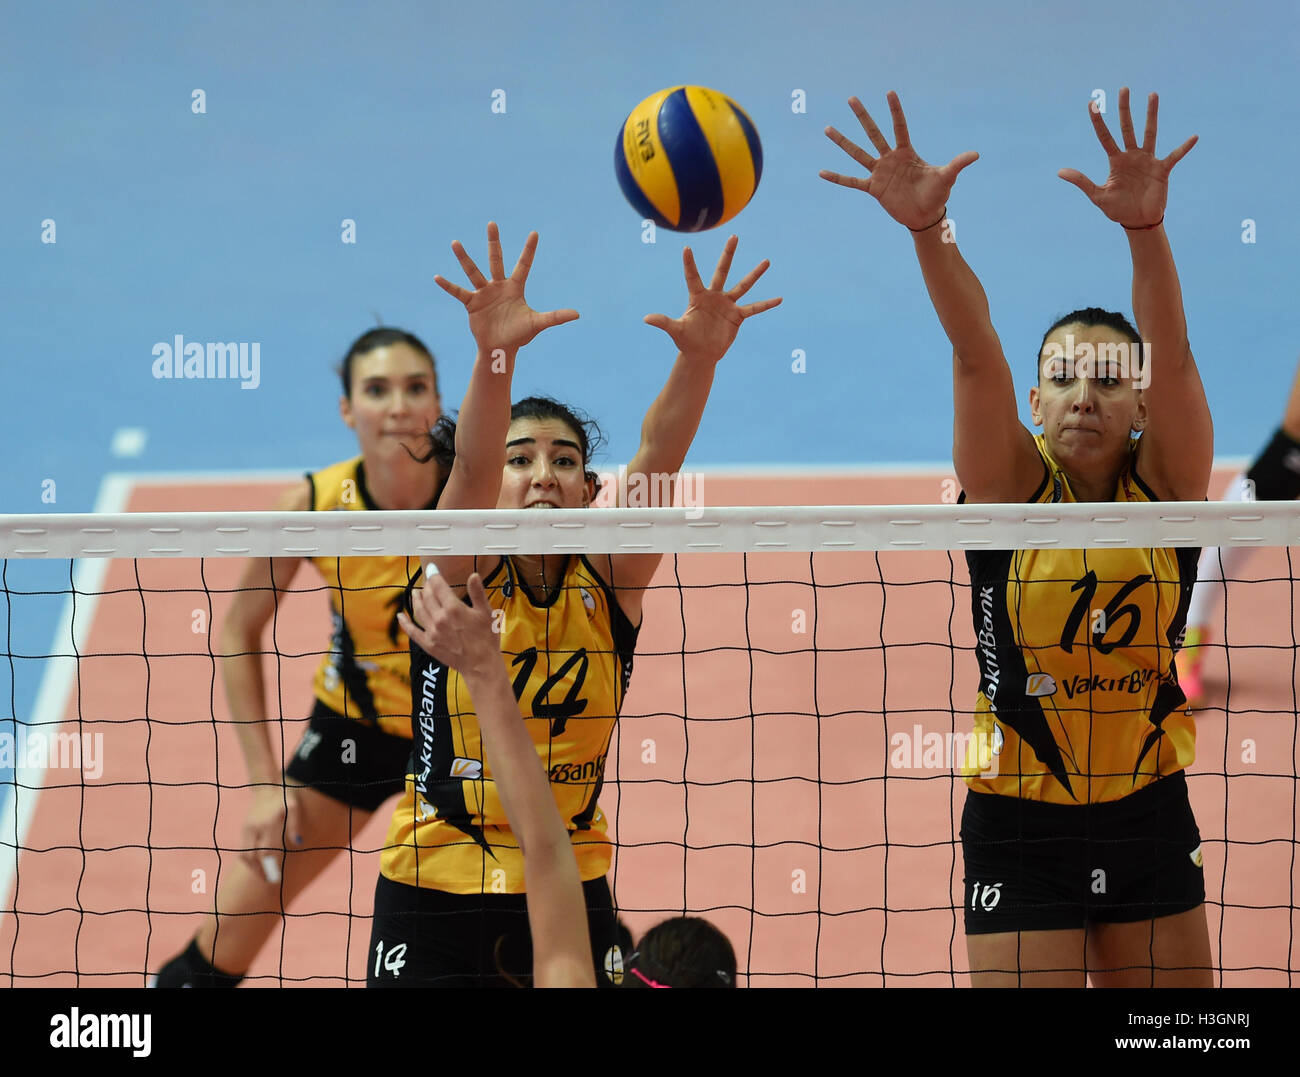 (161009) -- ISTANBUL, Oct. 9, 2016(Xinhua) -- Vakifbank player Milena Rasic (R) and Melis Durul block the ball during Stock Foto